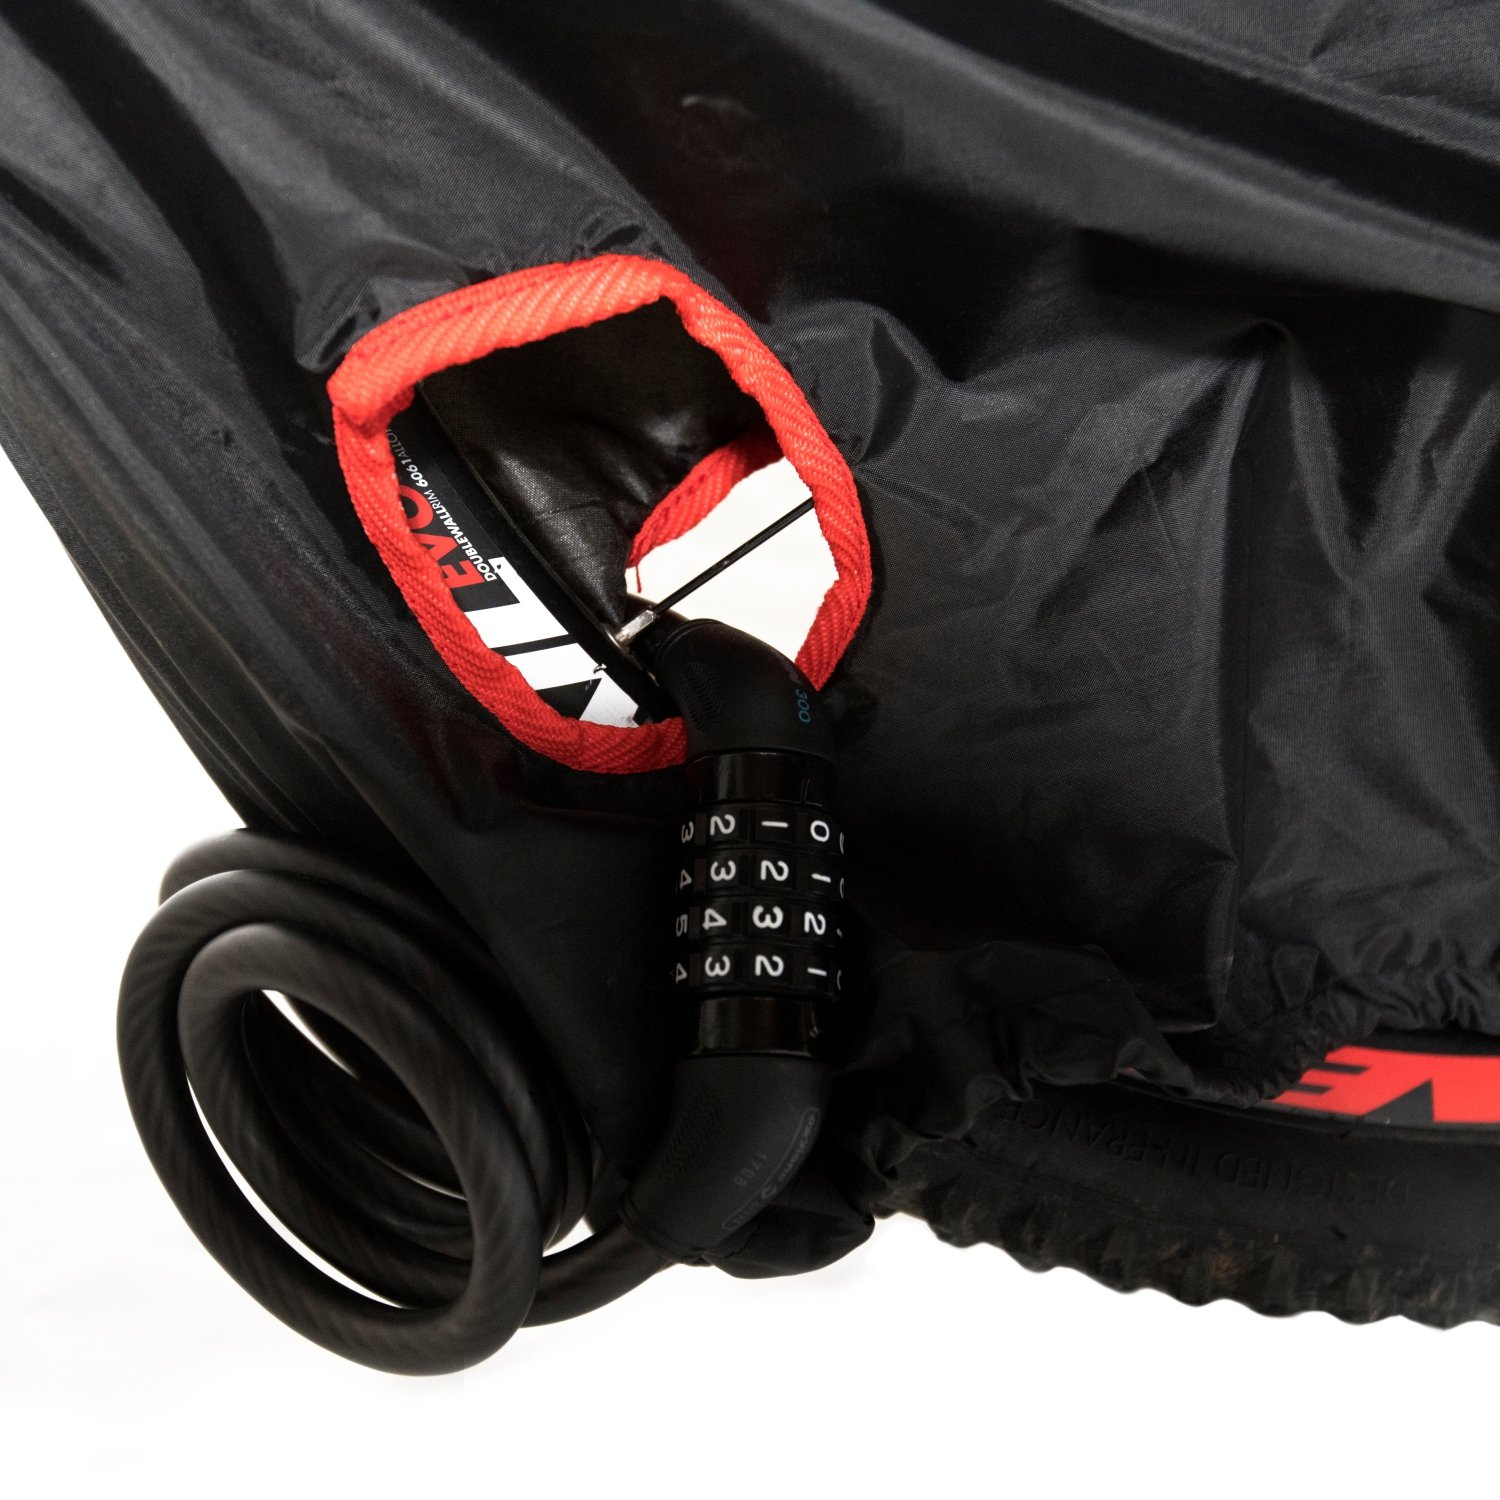 MarLine Bike Cover Outdoor Waterproof Bicycle Cover Dust Snow Proof with Lock Hole and Reflective Straps by Marline (Image #4)